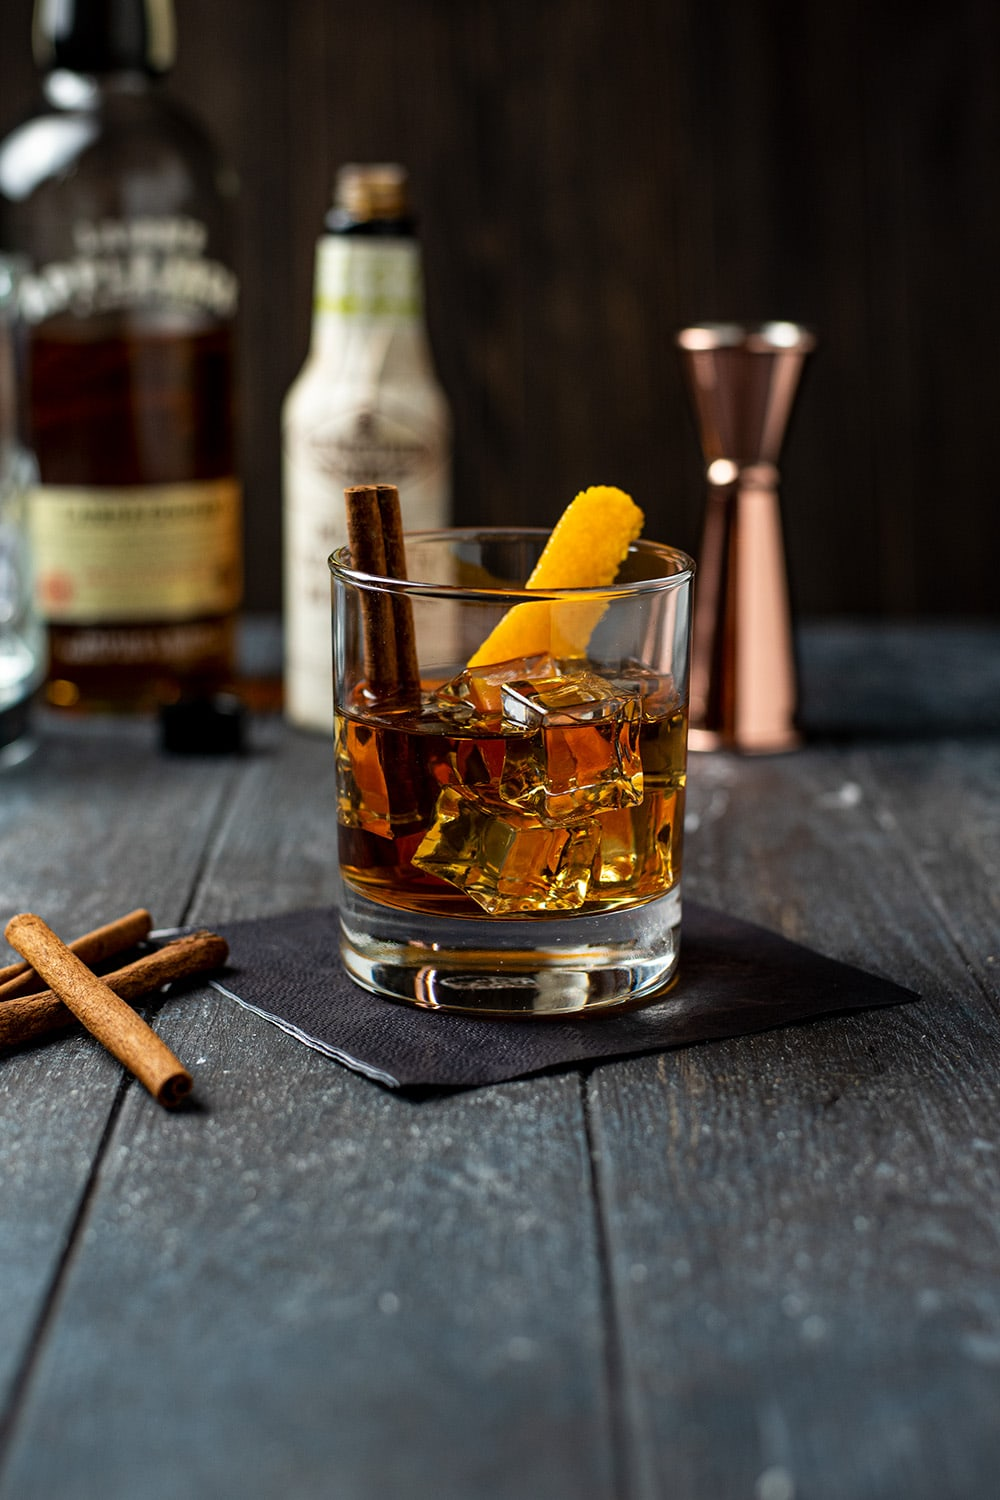 Applejack Fall Old Fashioned Cocktail Recipe